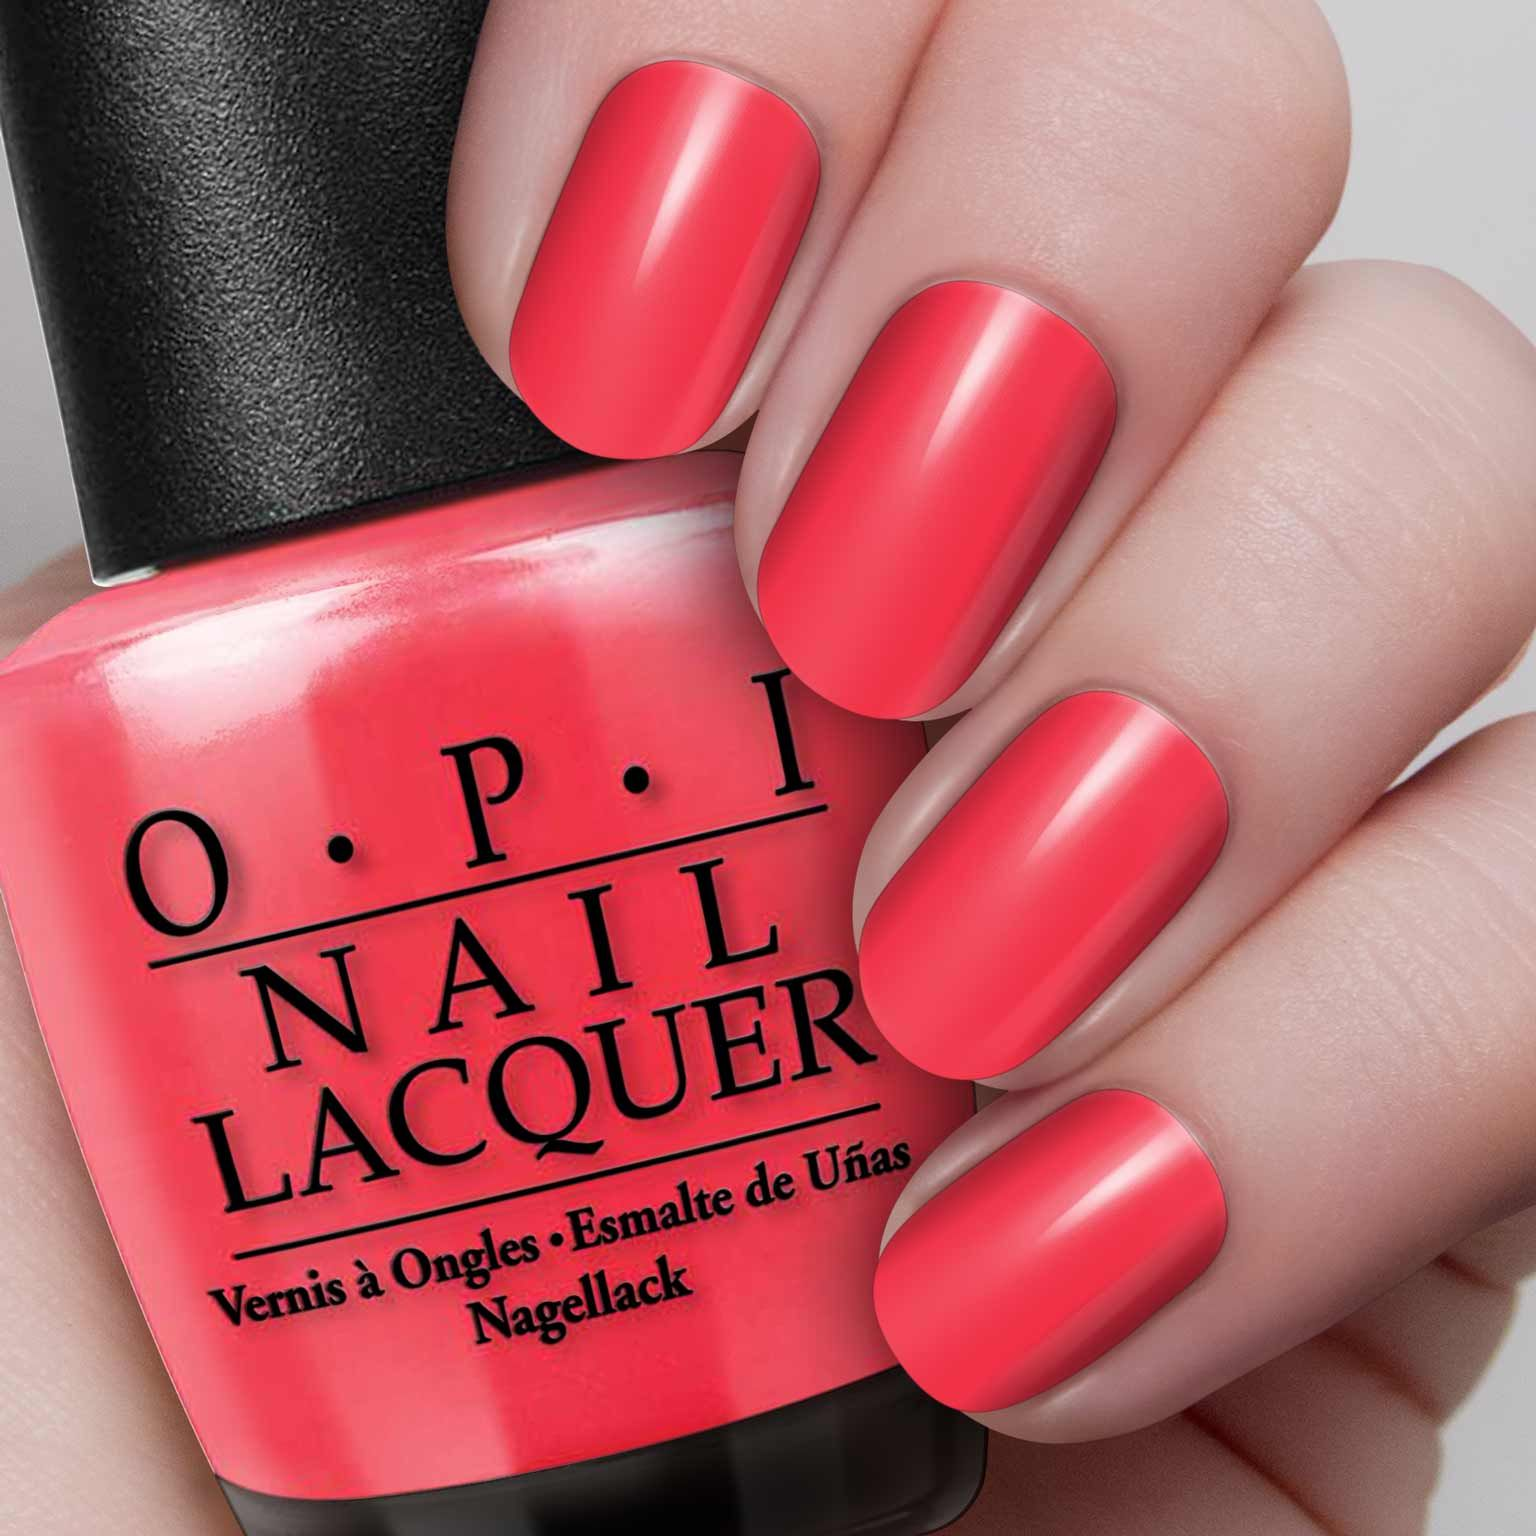 Pin by Jane on Beach Life | Pinterest | OPI, Pedi and Make up